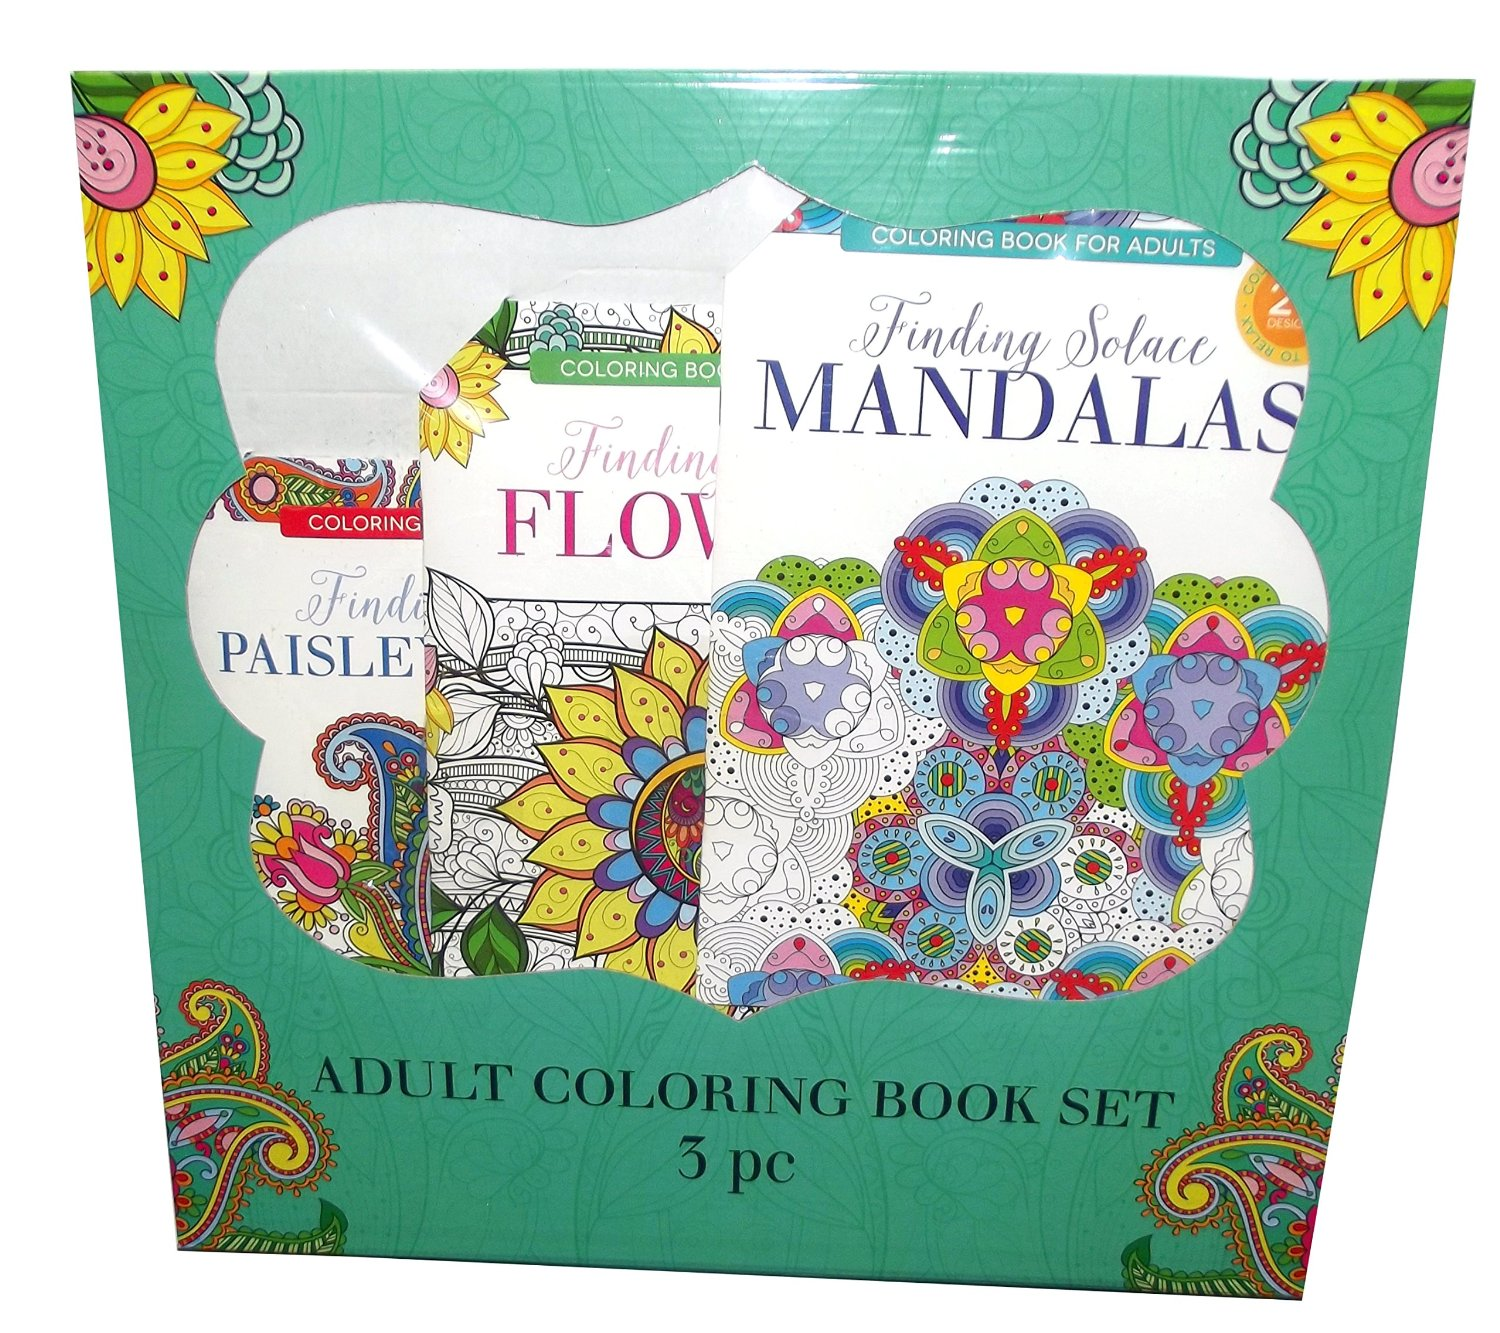 Coloring book for adults for pc - Coloring Book For Adults For Pc 38